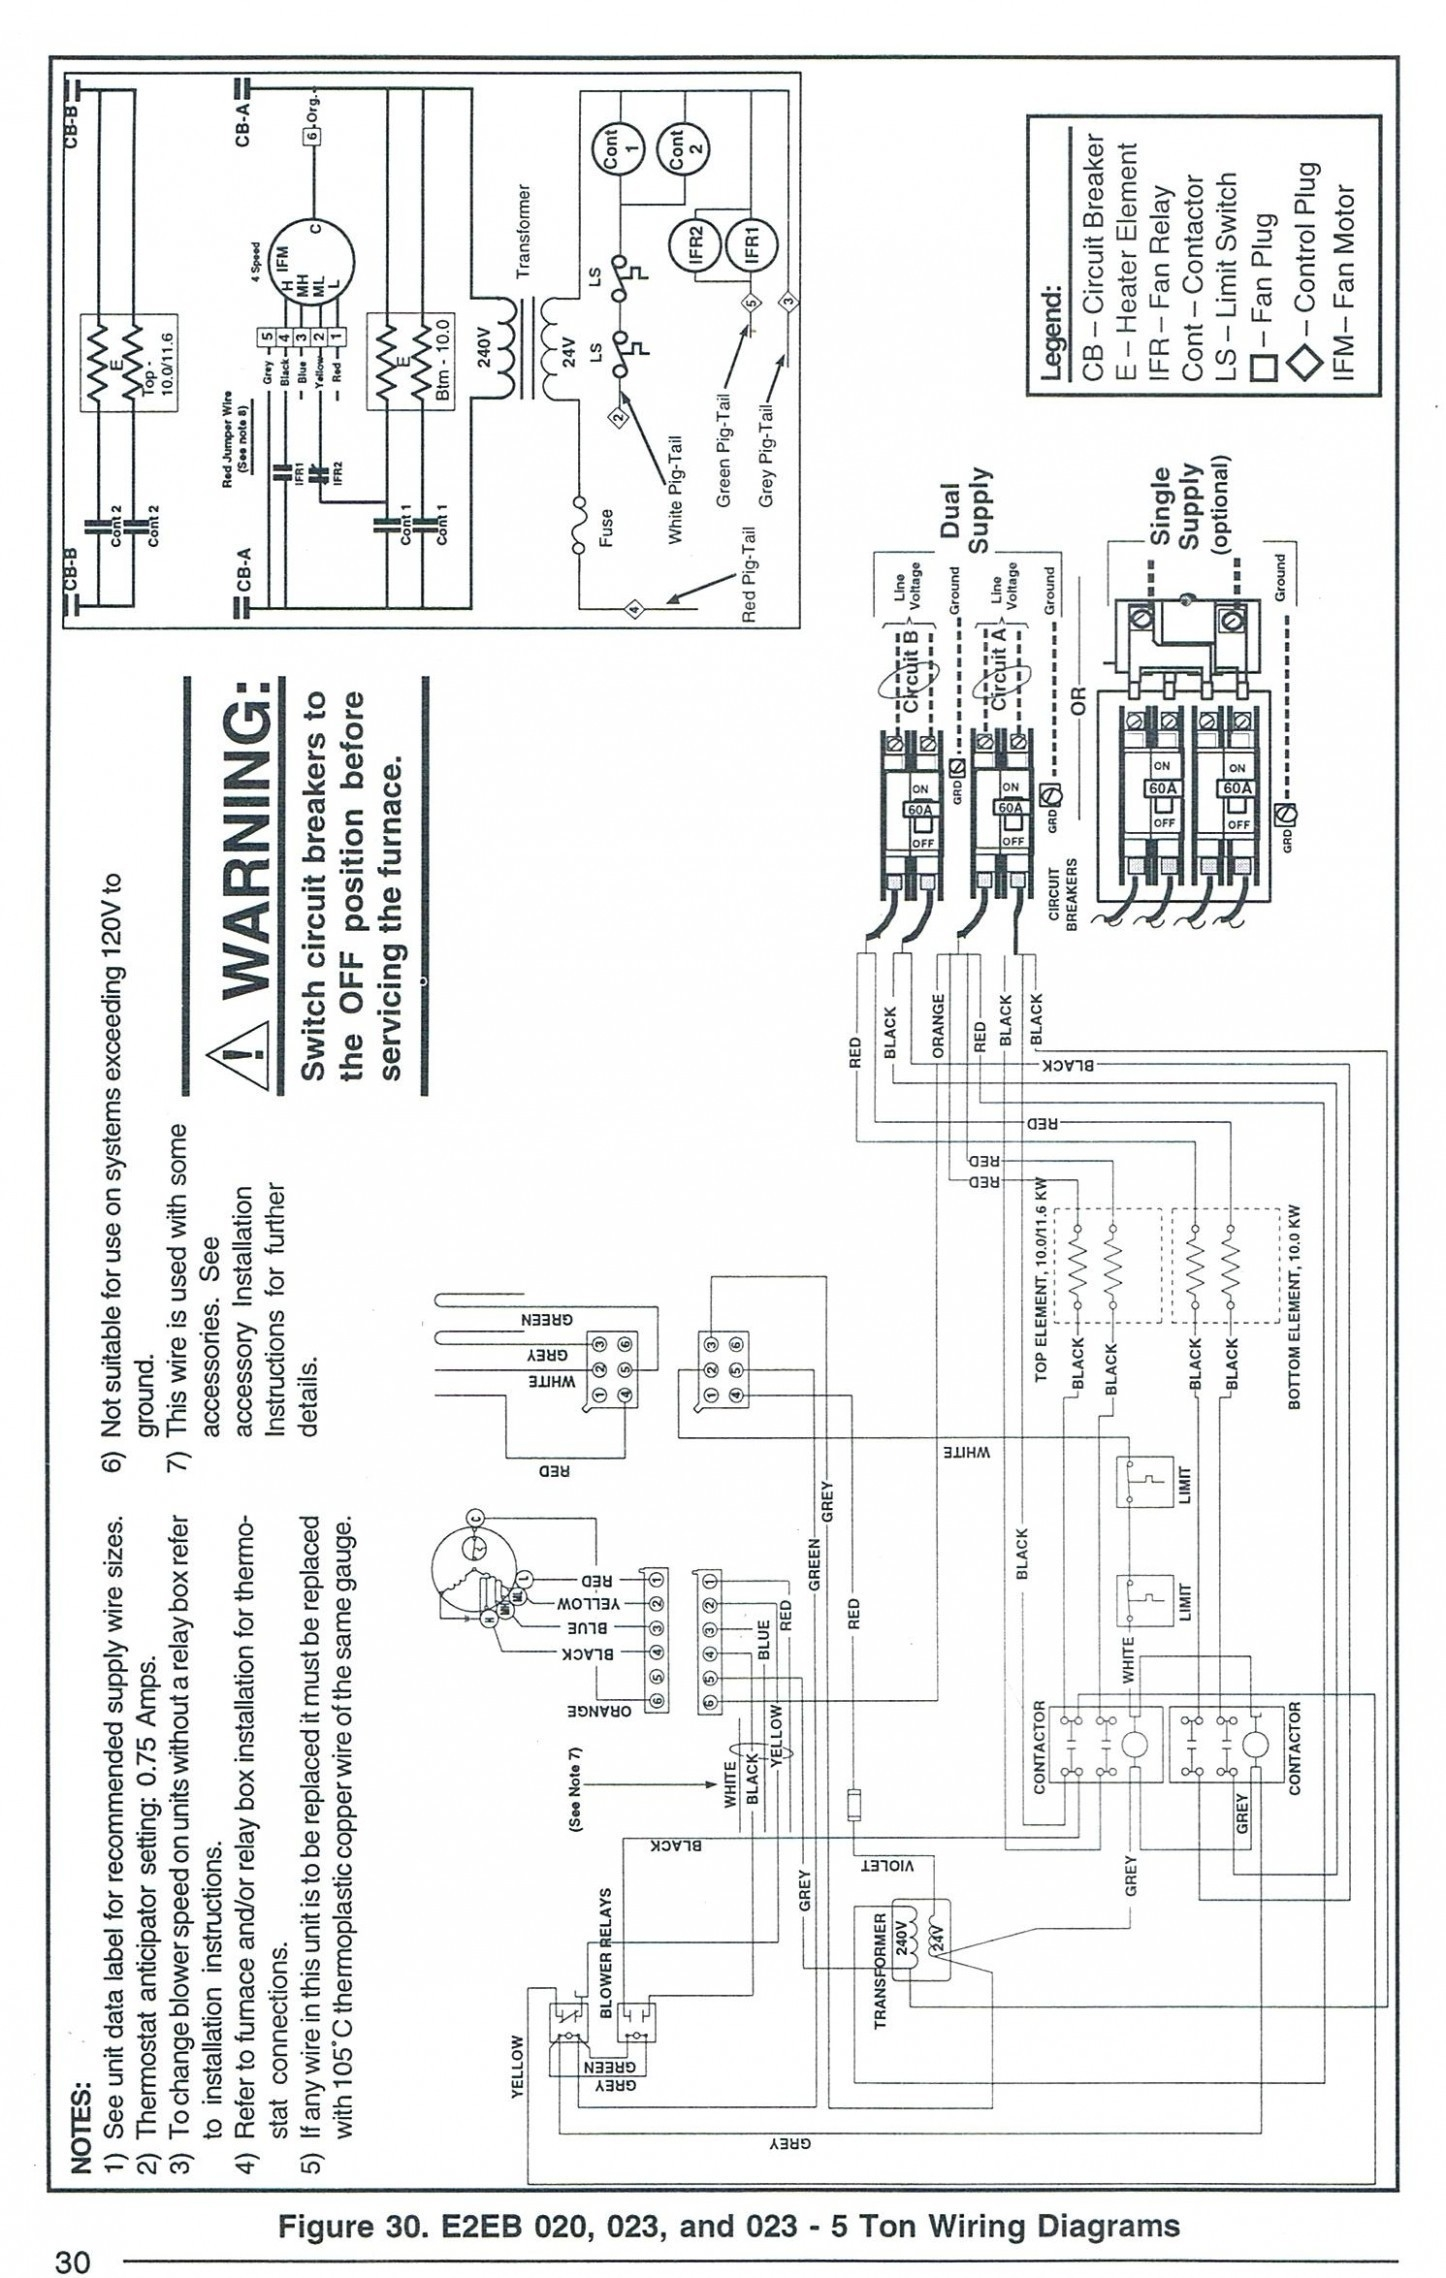 Diagram Wiring A Furnace Overview